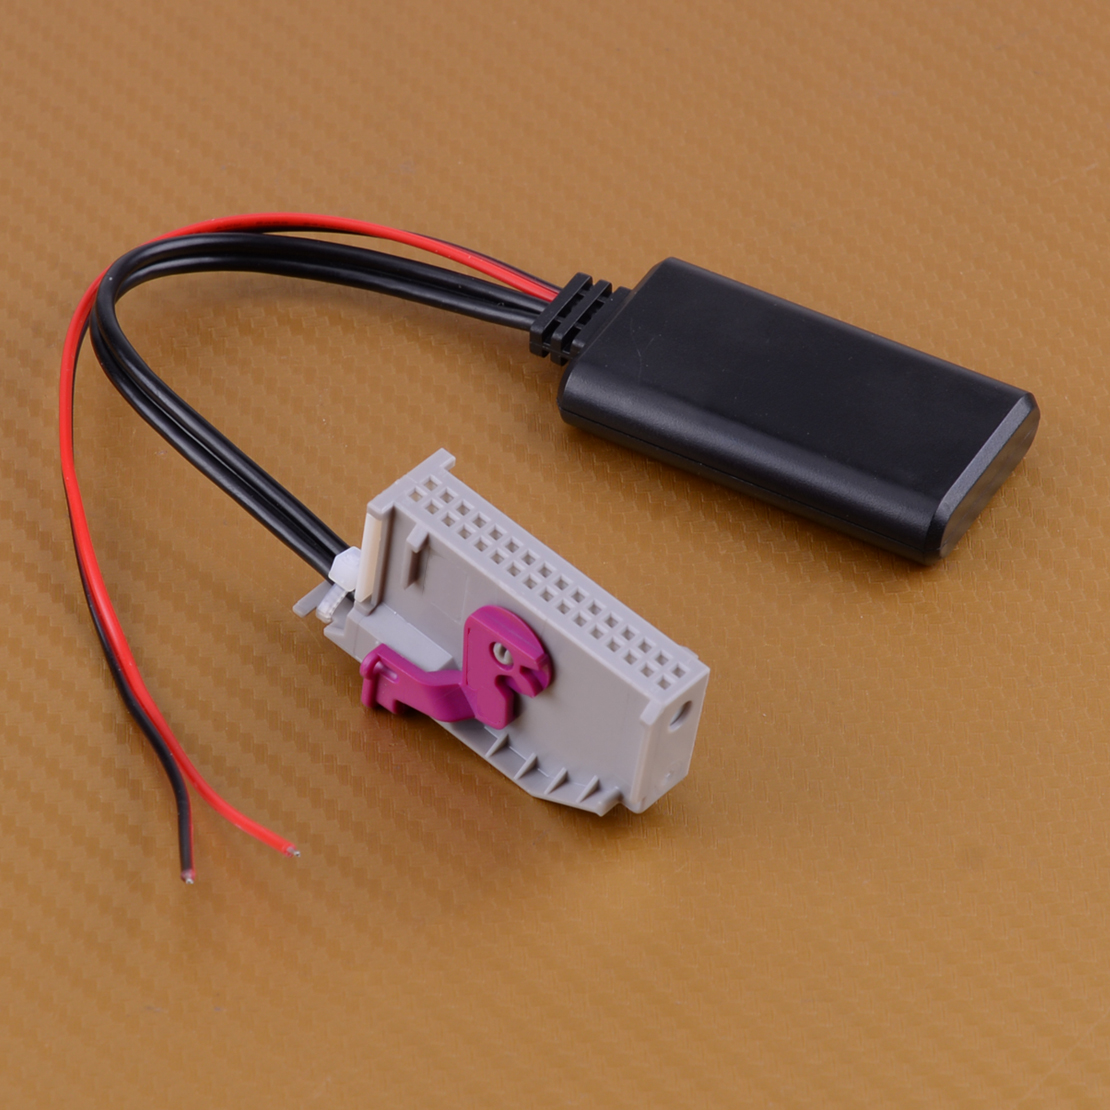 12V 32 Pin Plastic Bluetooth Adapter Aux Cable For A3 A4 A6 A8 TT R8 RNS-E